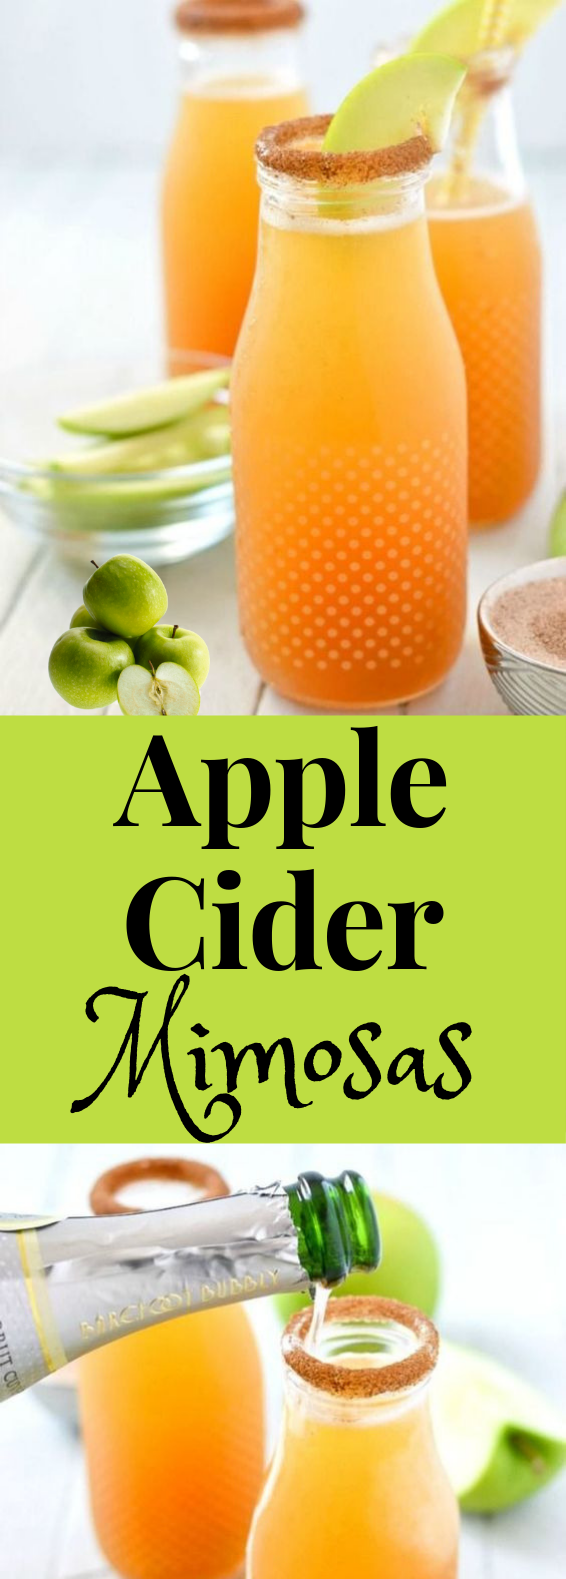 Must Try Fall Drink: 2 Ingredient Apple Cider Mimosas #FallDrink #Mimosas